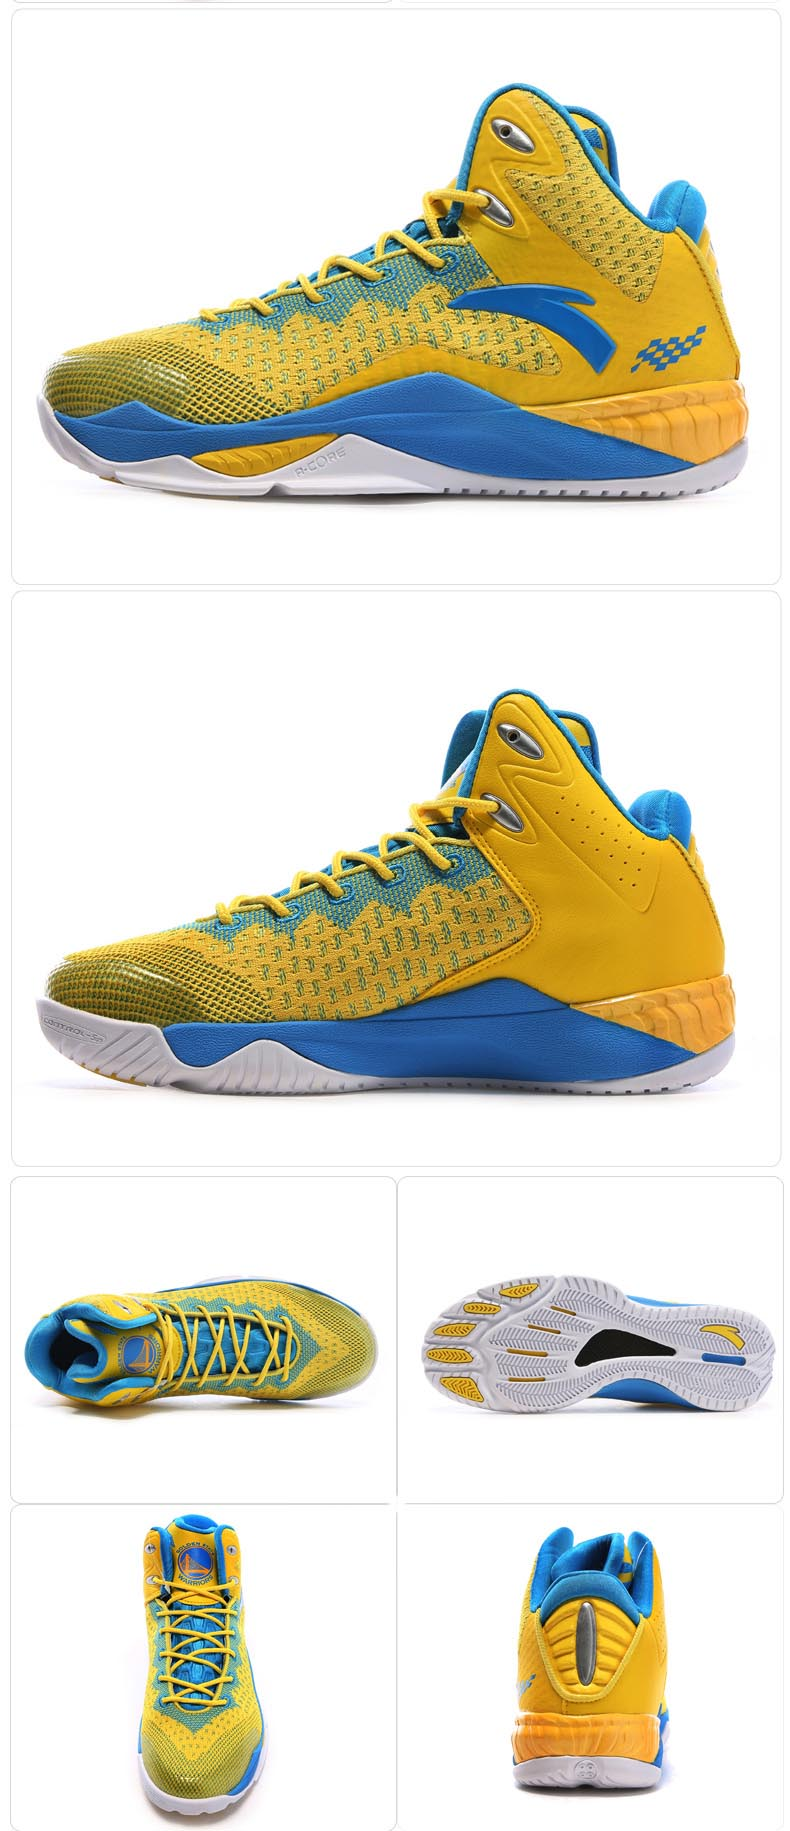 Anta NBA Golden State Warriors 2016 Spring Basketball Shoes